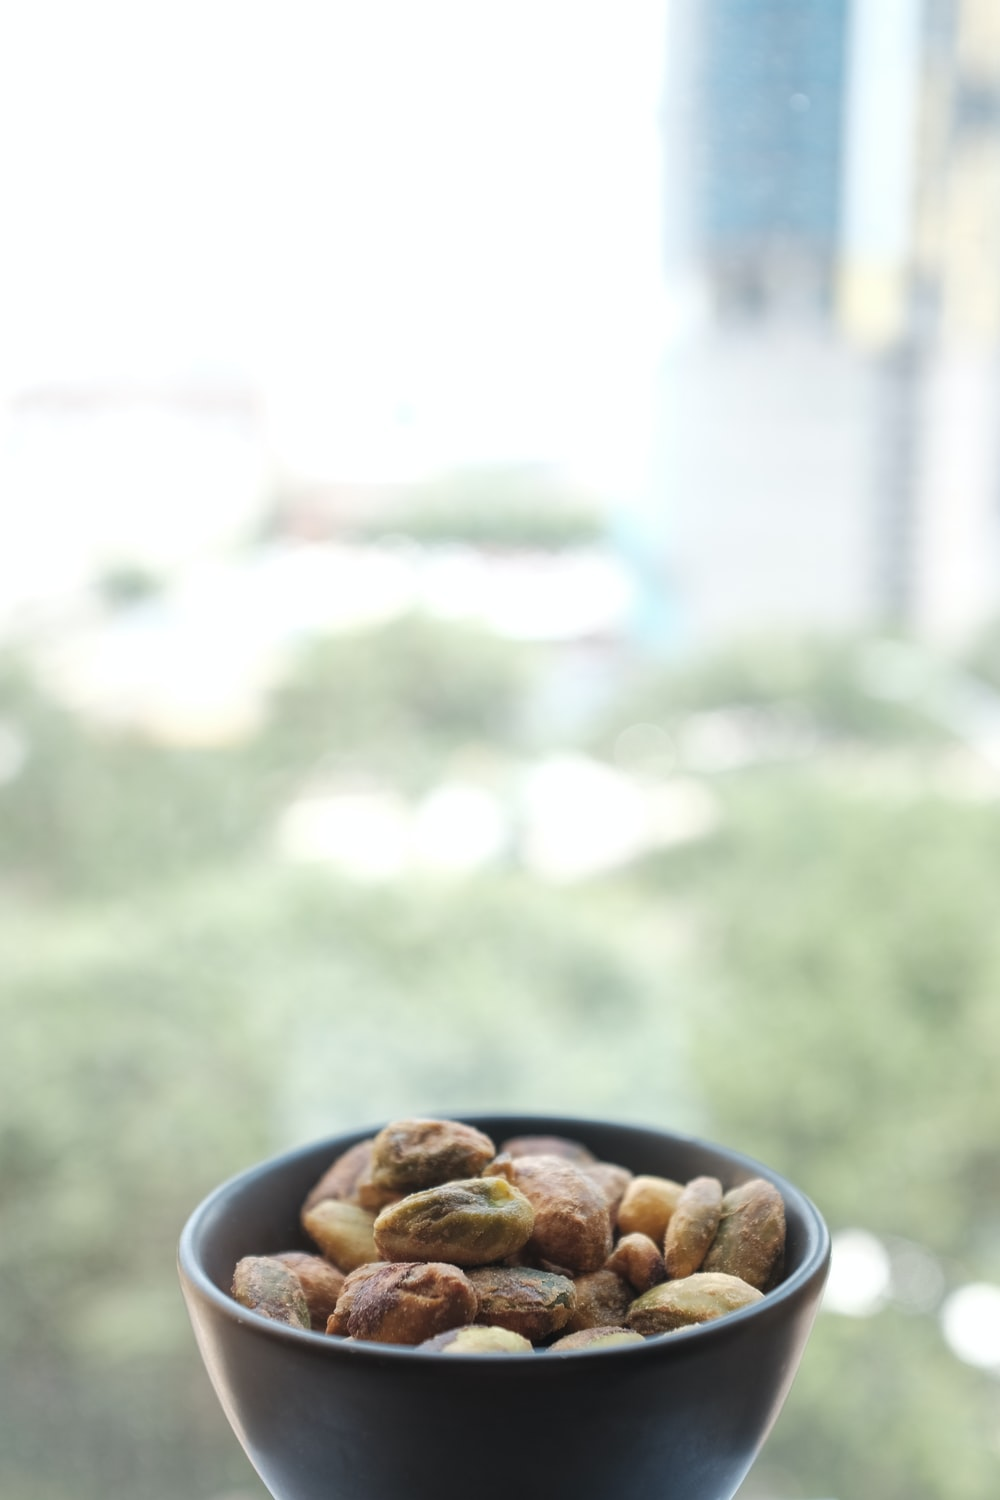 selective focus photography of nuts on black ceramic bowl